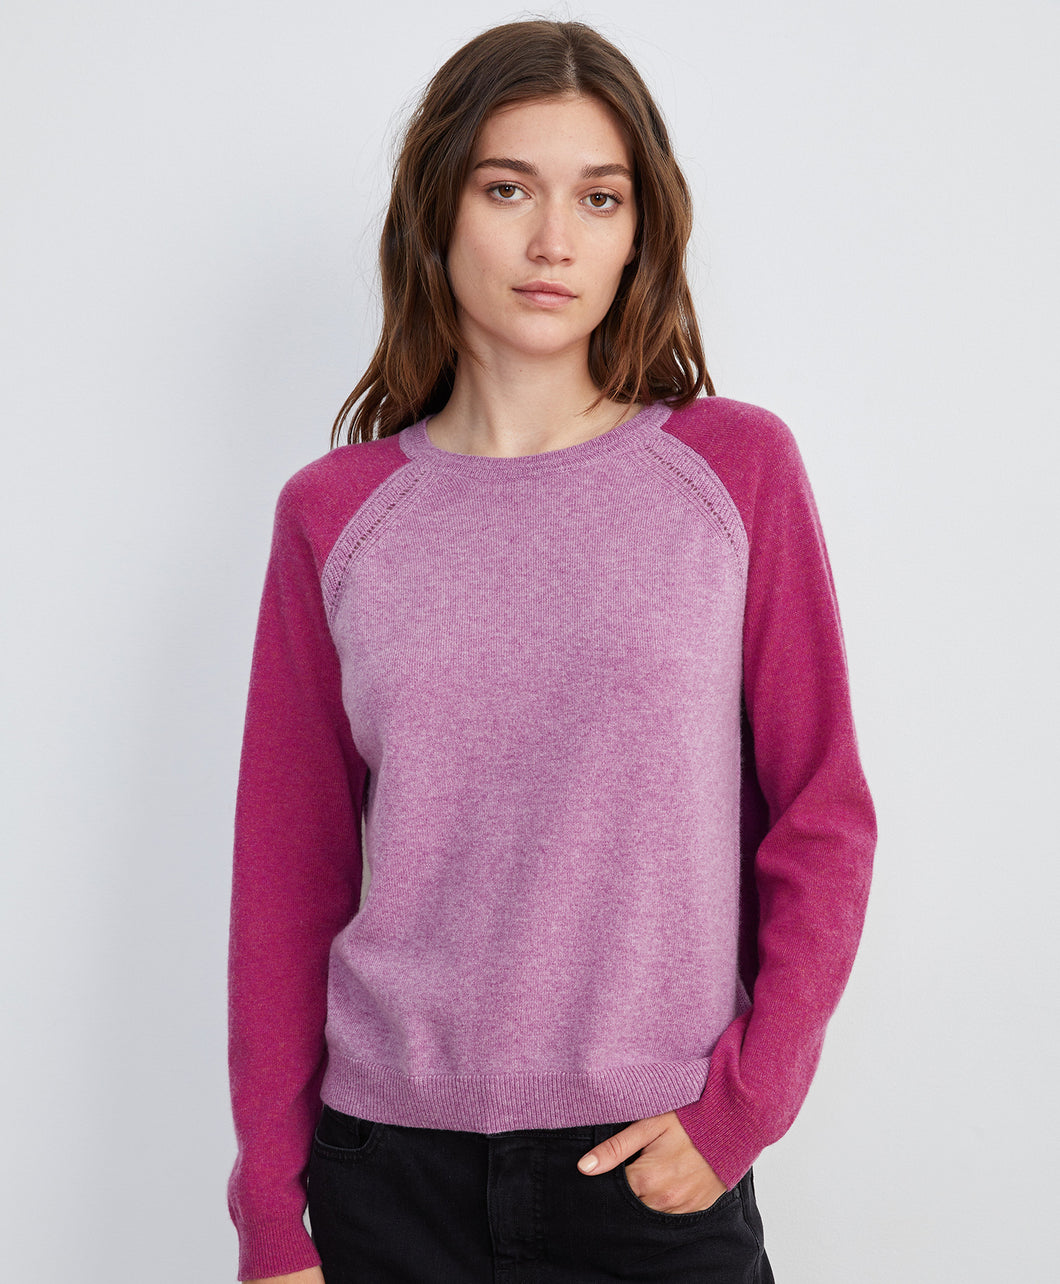 Velvet Rhondi Sweater